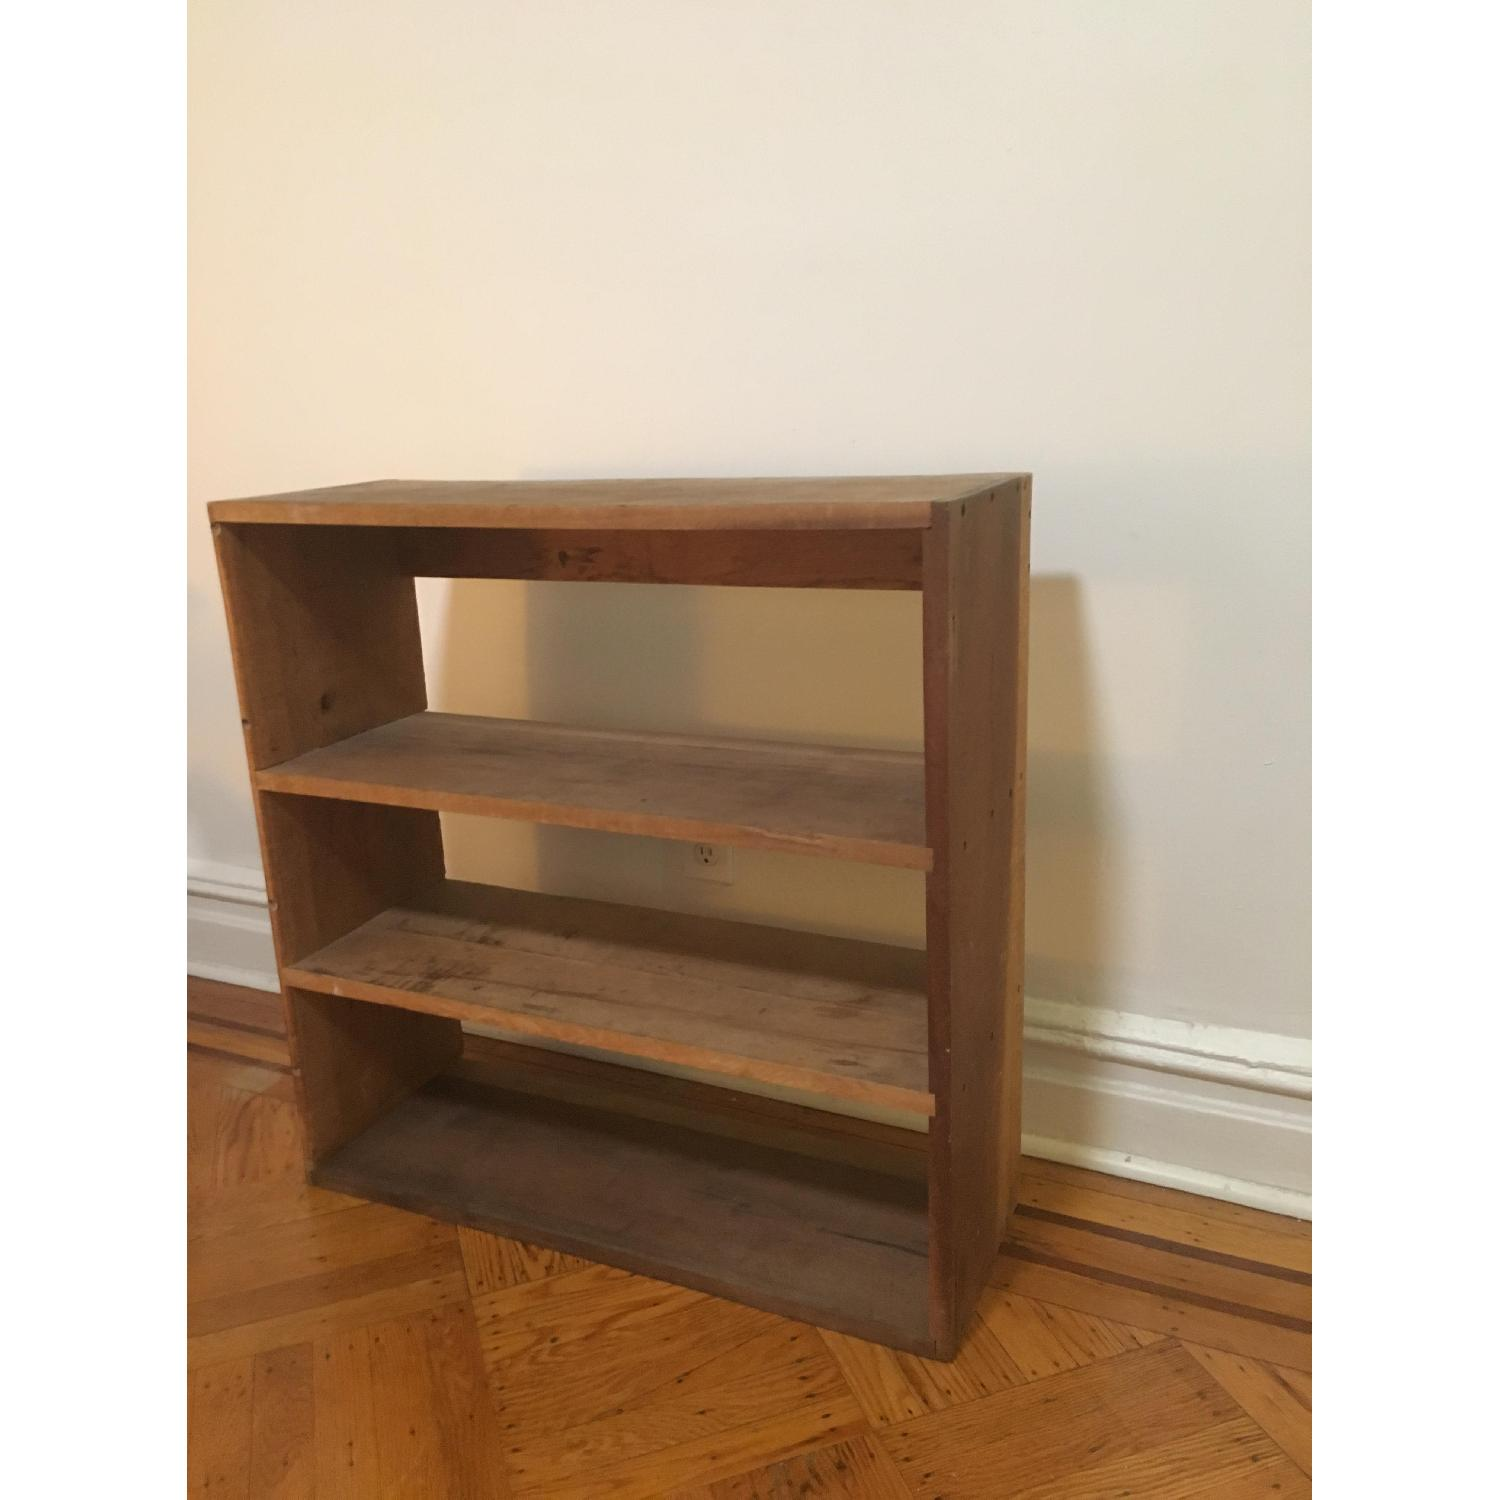 Vintage Bookcase w/ 3 Shelves - image-4